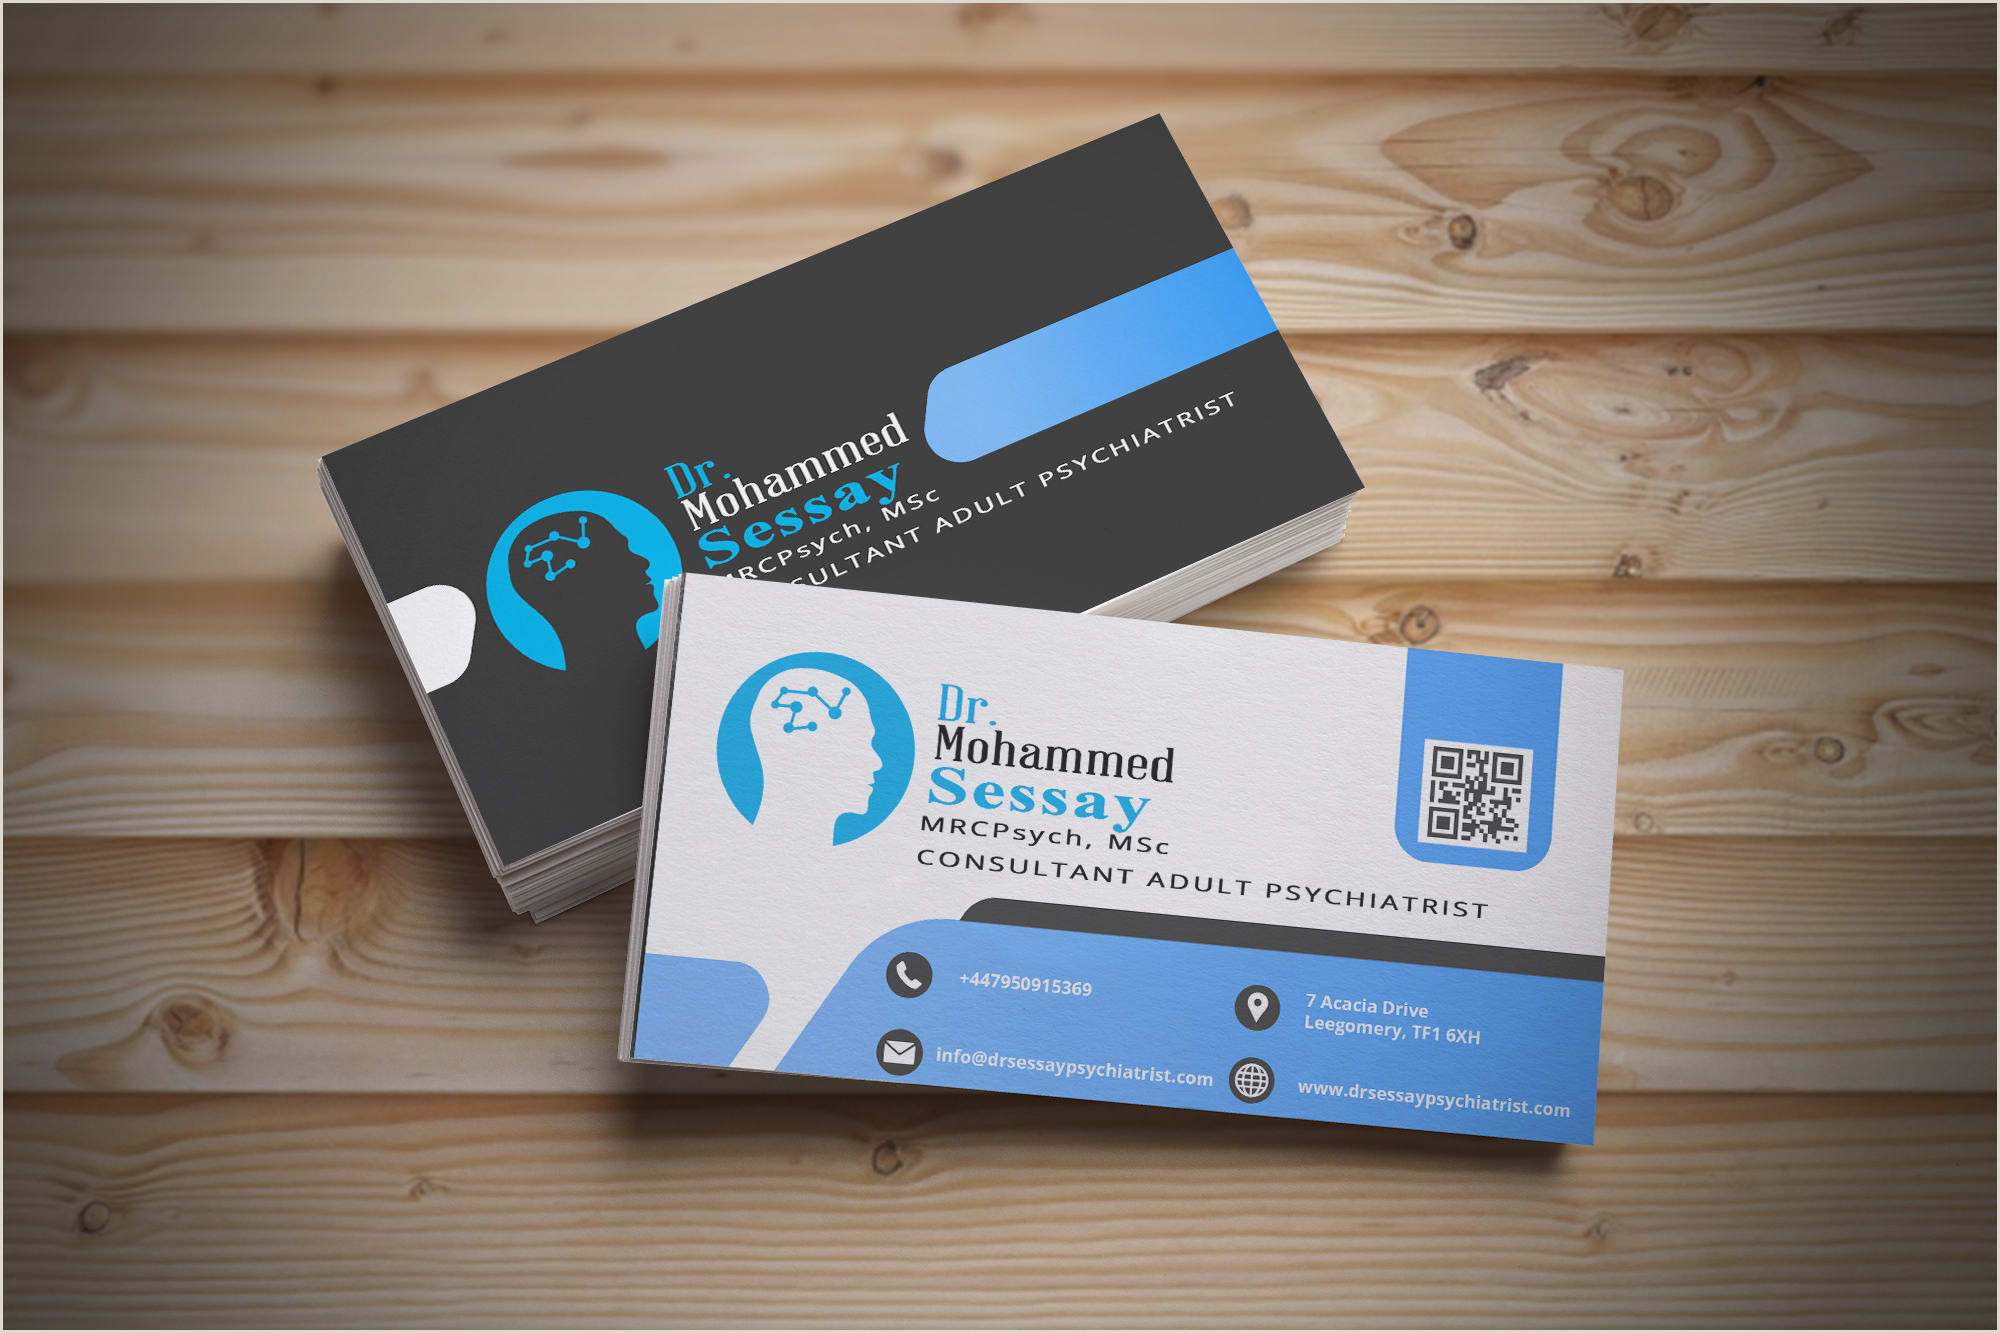 Best Business Cards When In 5/24 Flyertalk Design Outstanding 2side Business Card In 24 Hrs By Designxp